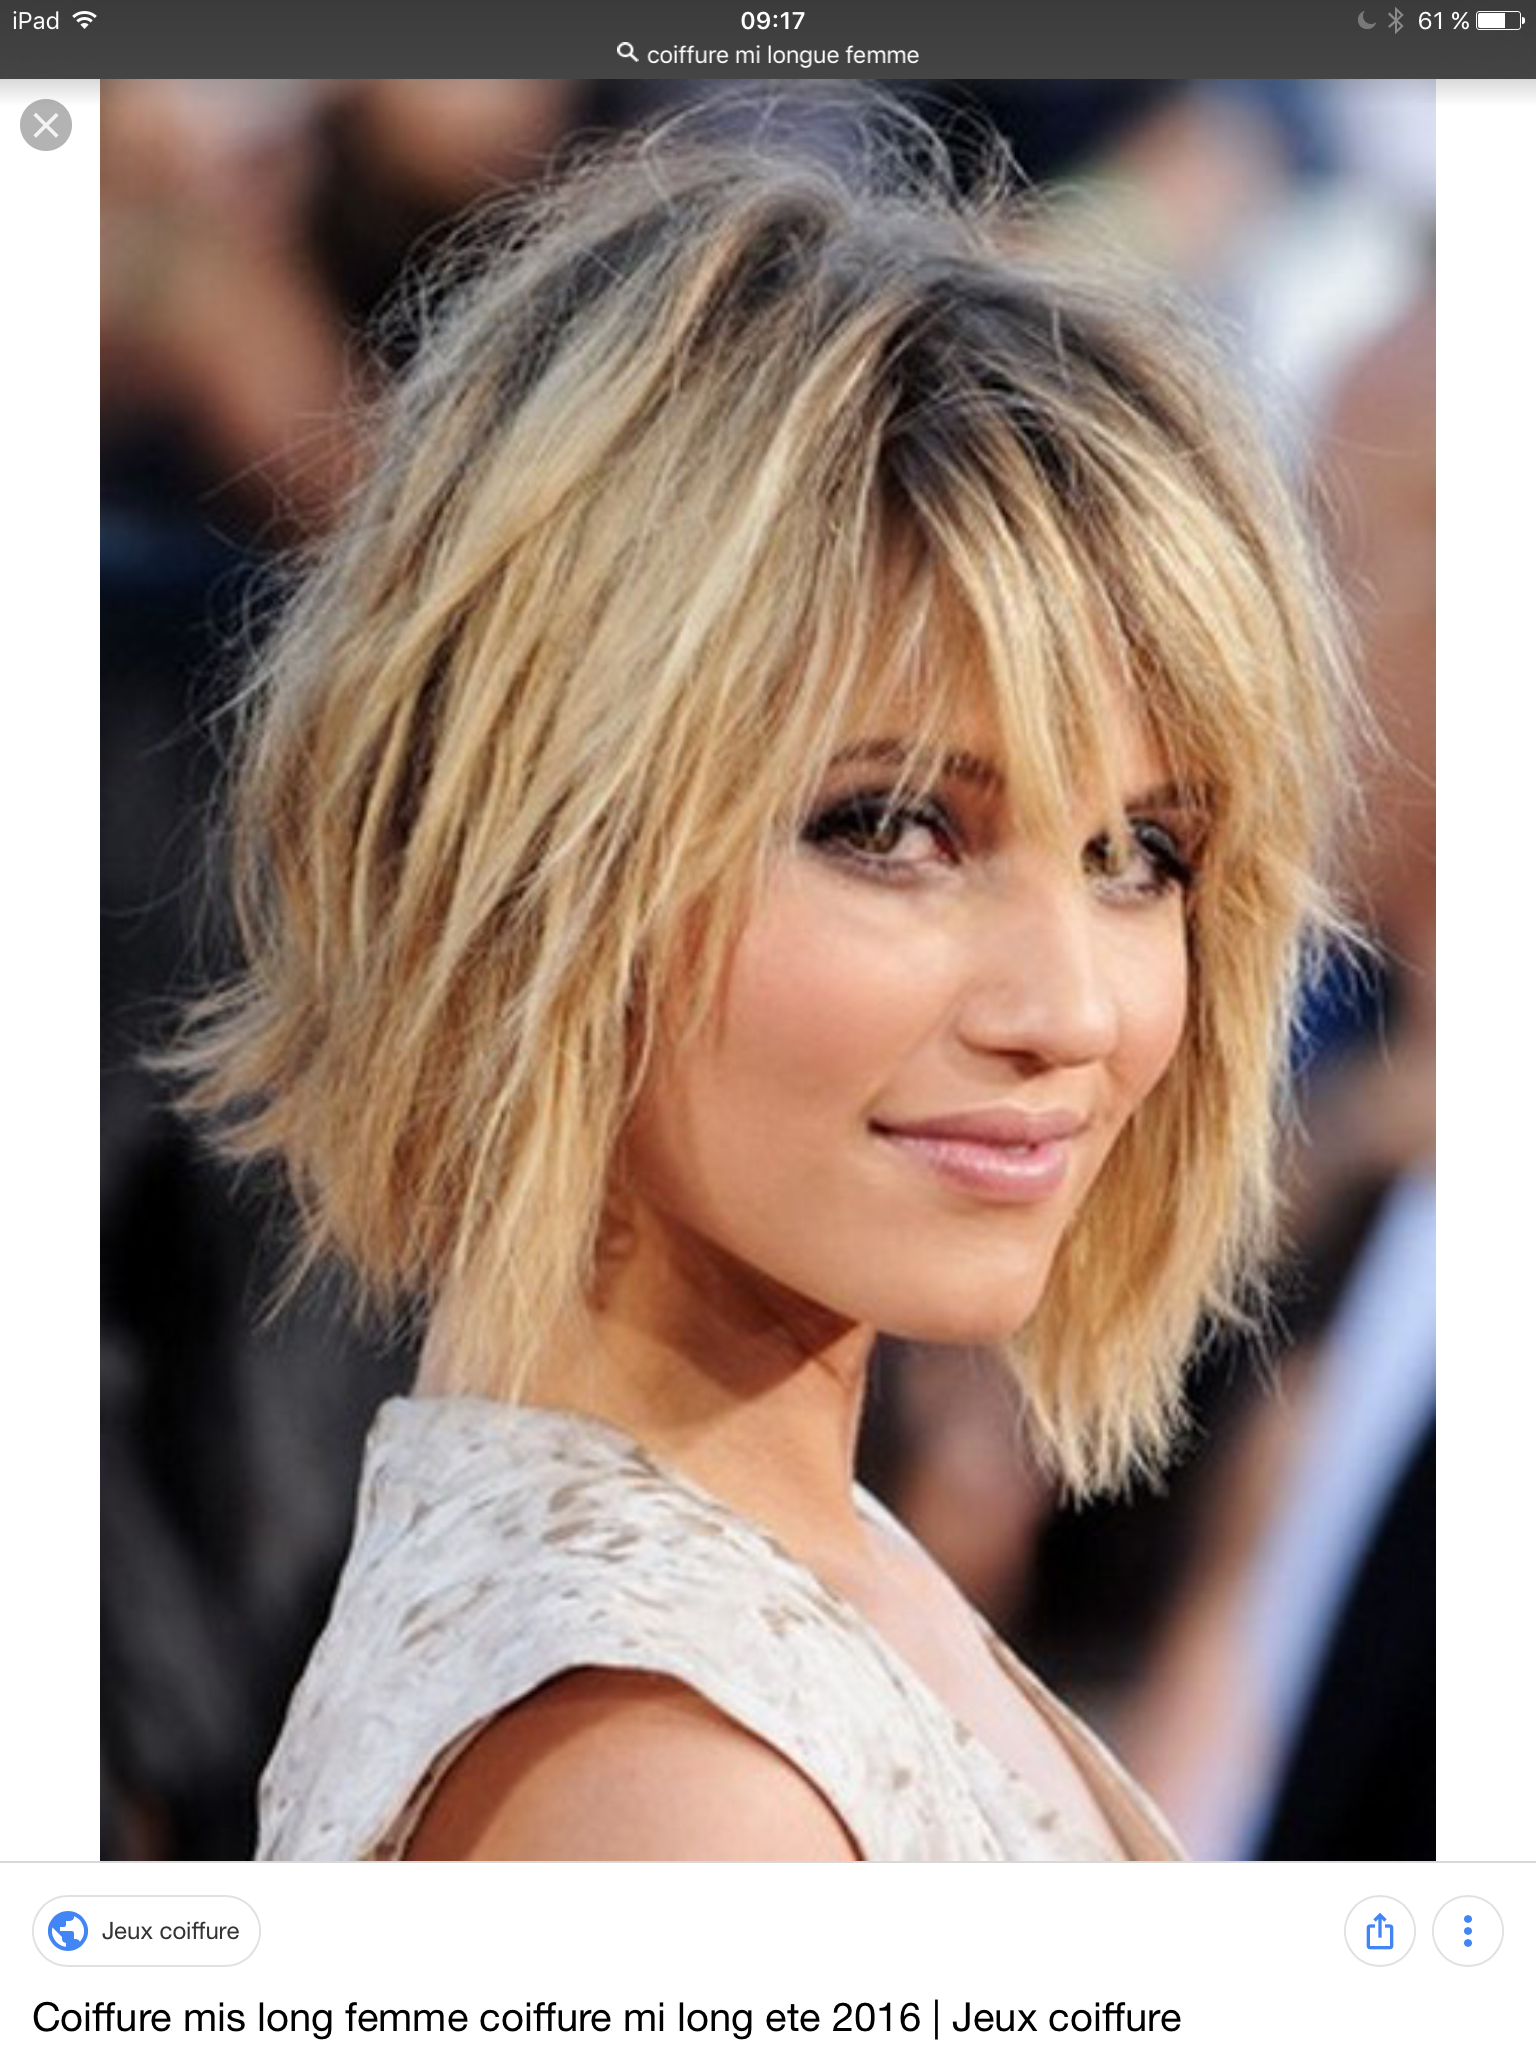 Pin by Karine Bey on Coiffures | Messy bob hairstyles, Medium hair styles, Bob  hairstyles